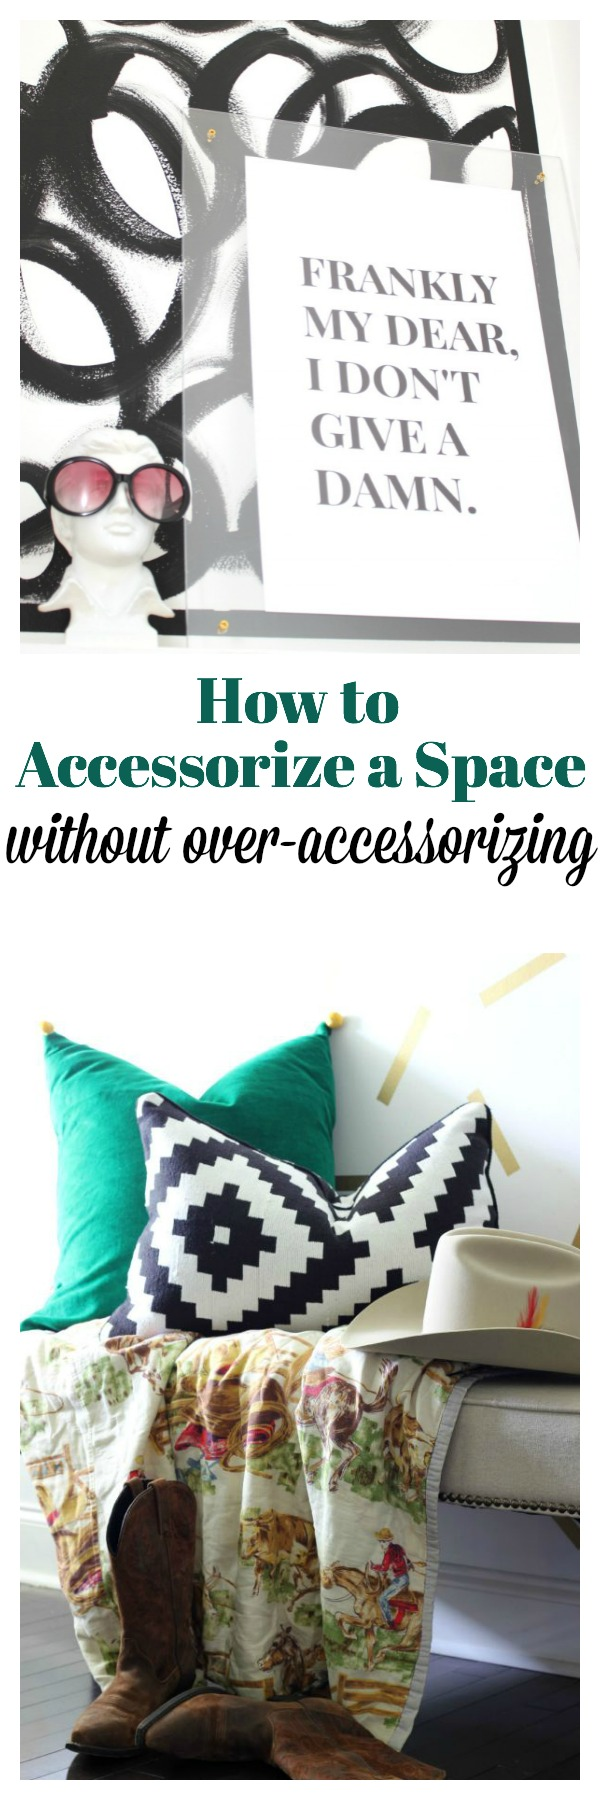 how-to-accessorize-a-space-without-over-accessorizing-15